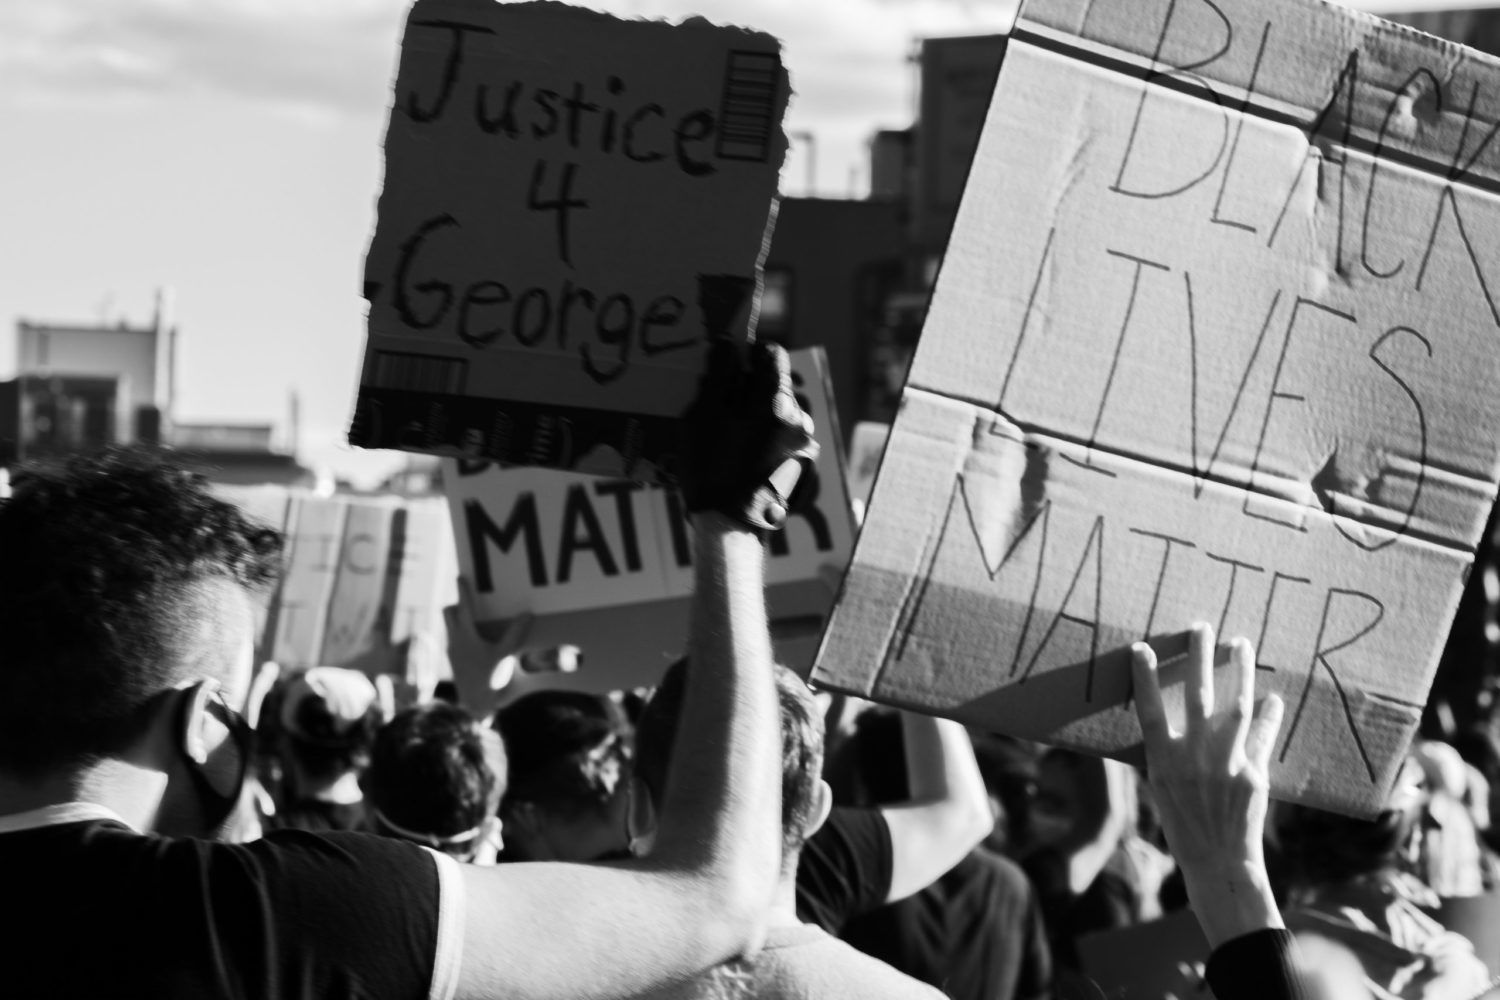 black lives matter signs held up during a protest